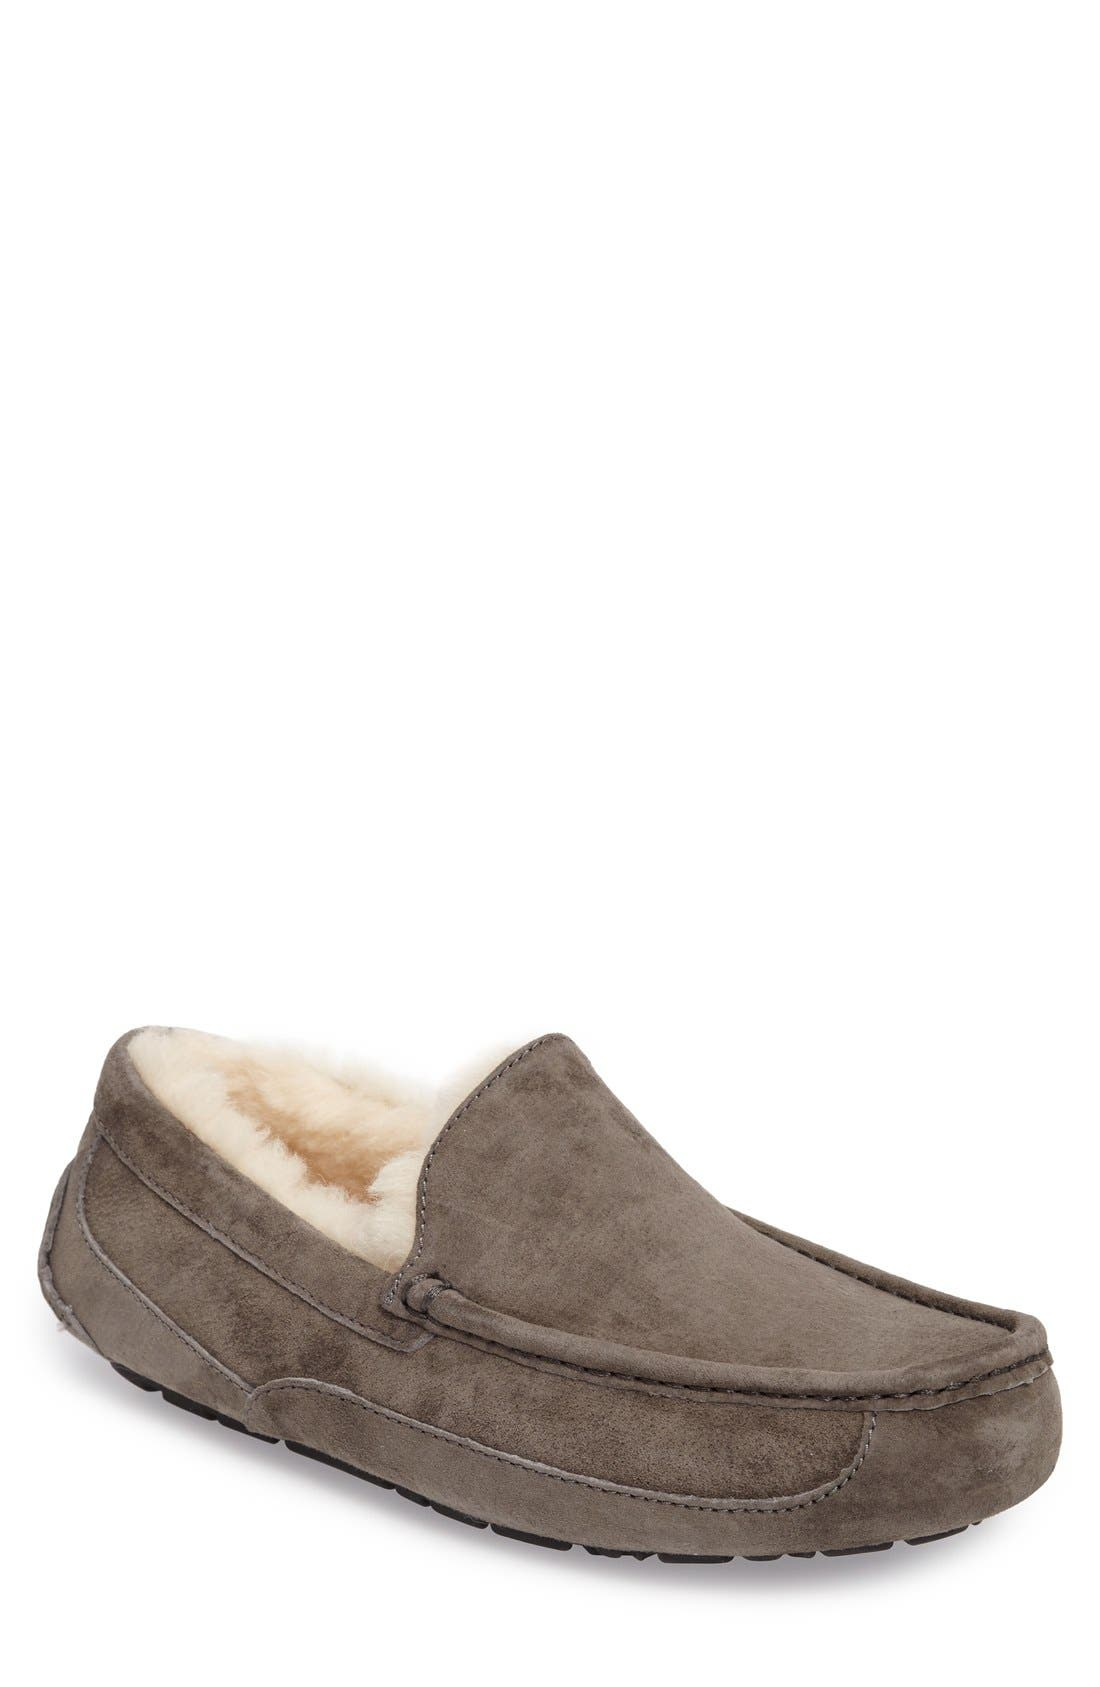 Alternate Image 1 Selected - UGG® Ascot Suede Slipper (Men)